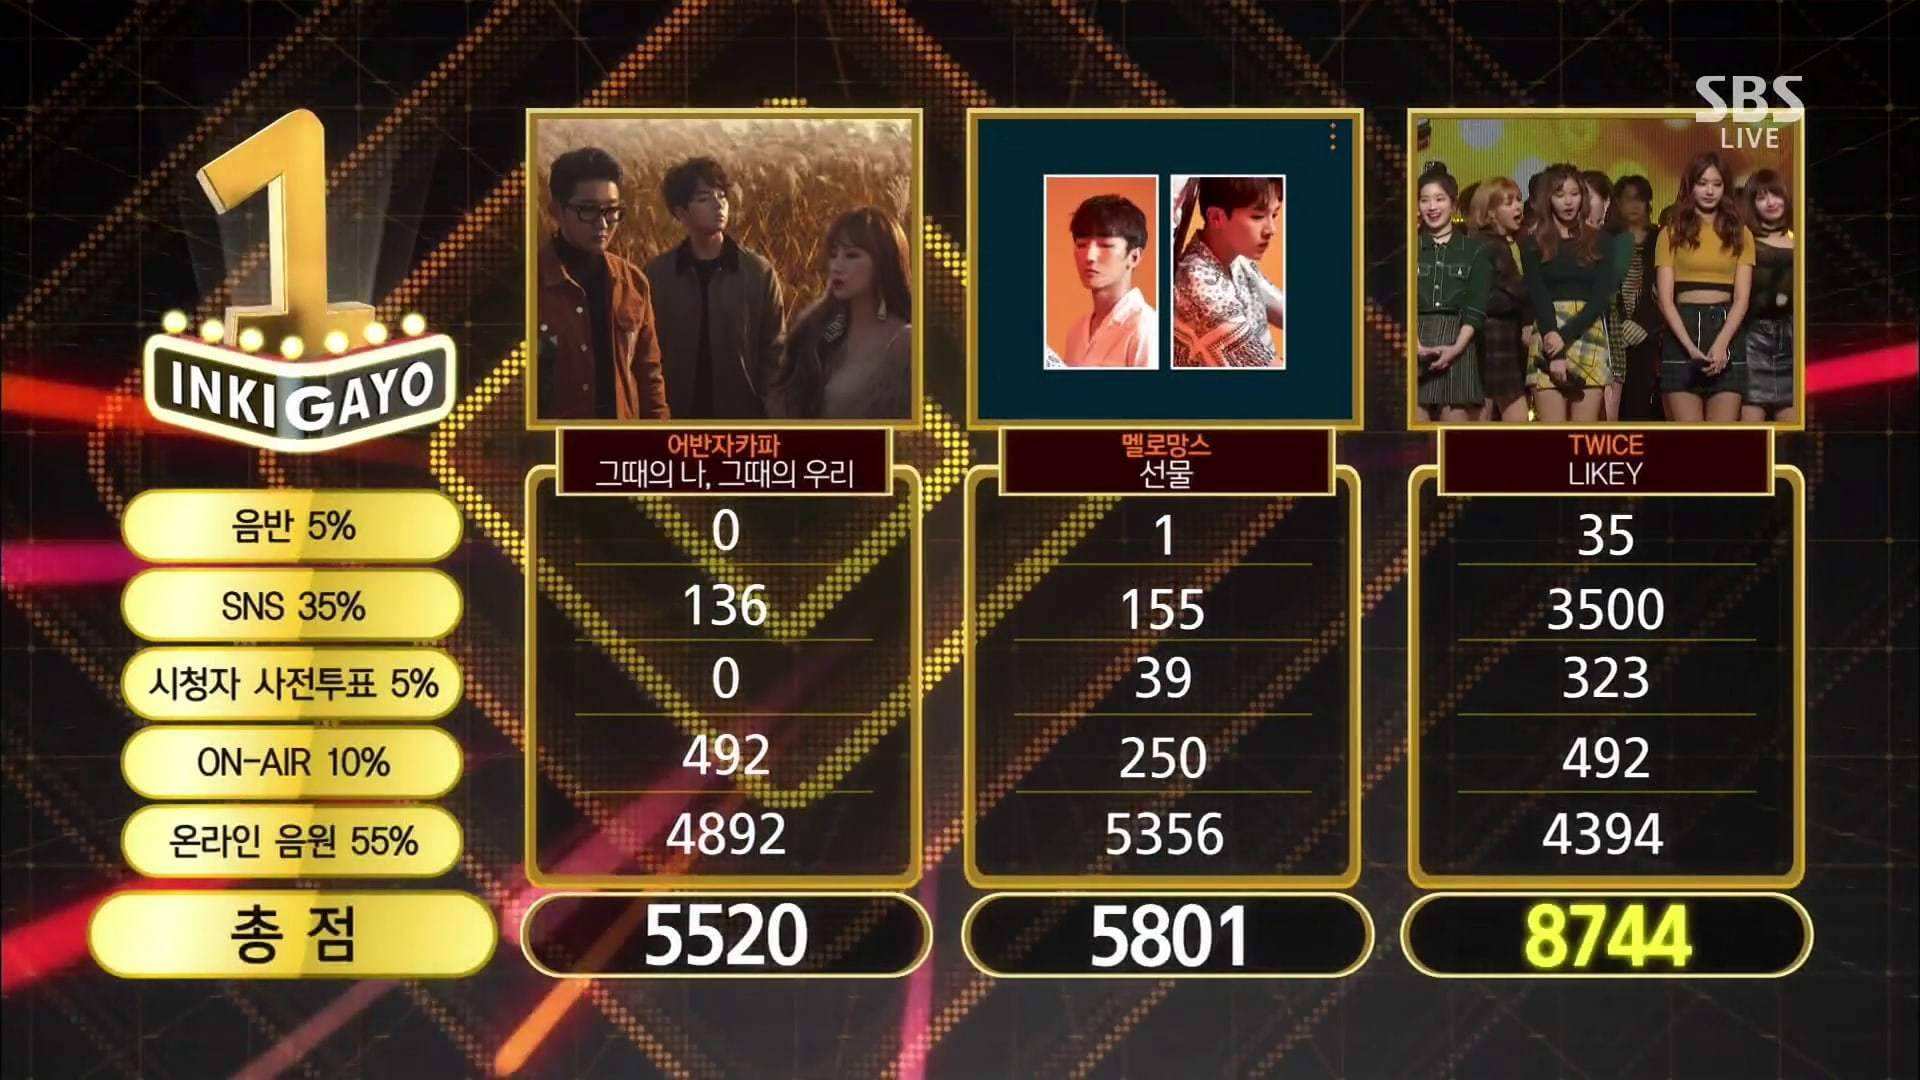 """Watch: TWICE Takes 6th Win For """"Likey"""" On """"Inkigayo""""; Performances By Wanna One, Red Velvet, Samuel, And More!"""